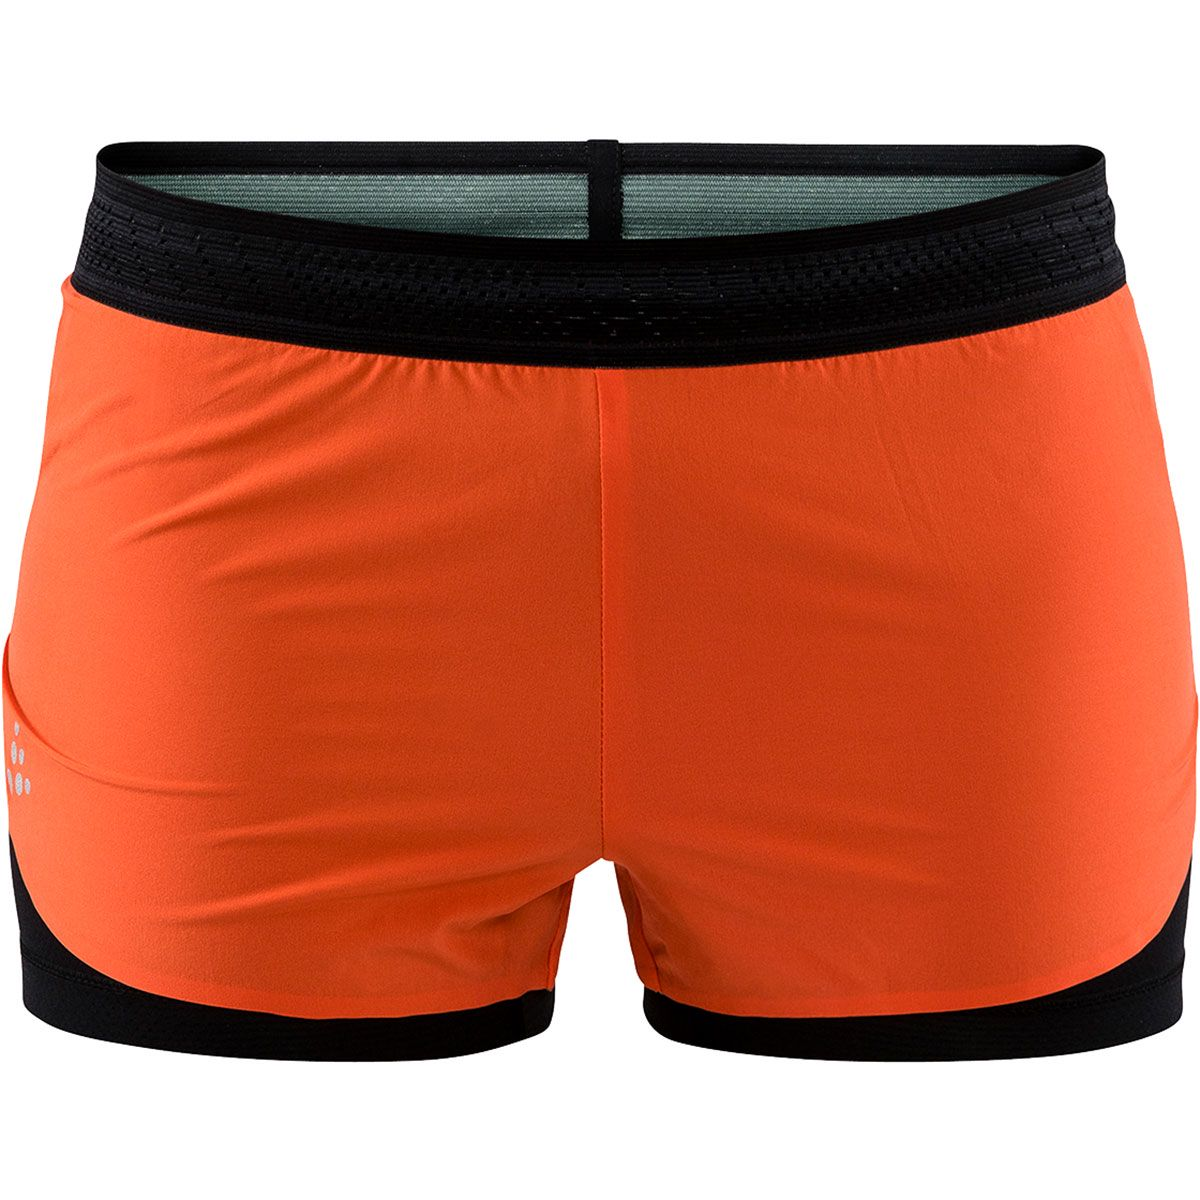 Craft Damen Nanoweight Shorts (Größe S, Orange) | Laufhosen > Damen